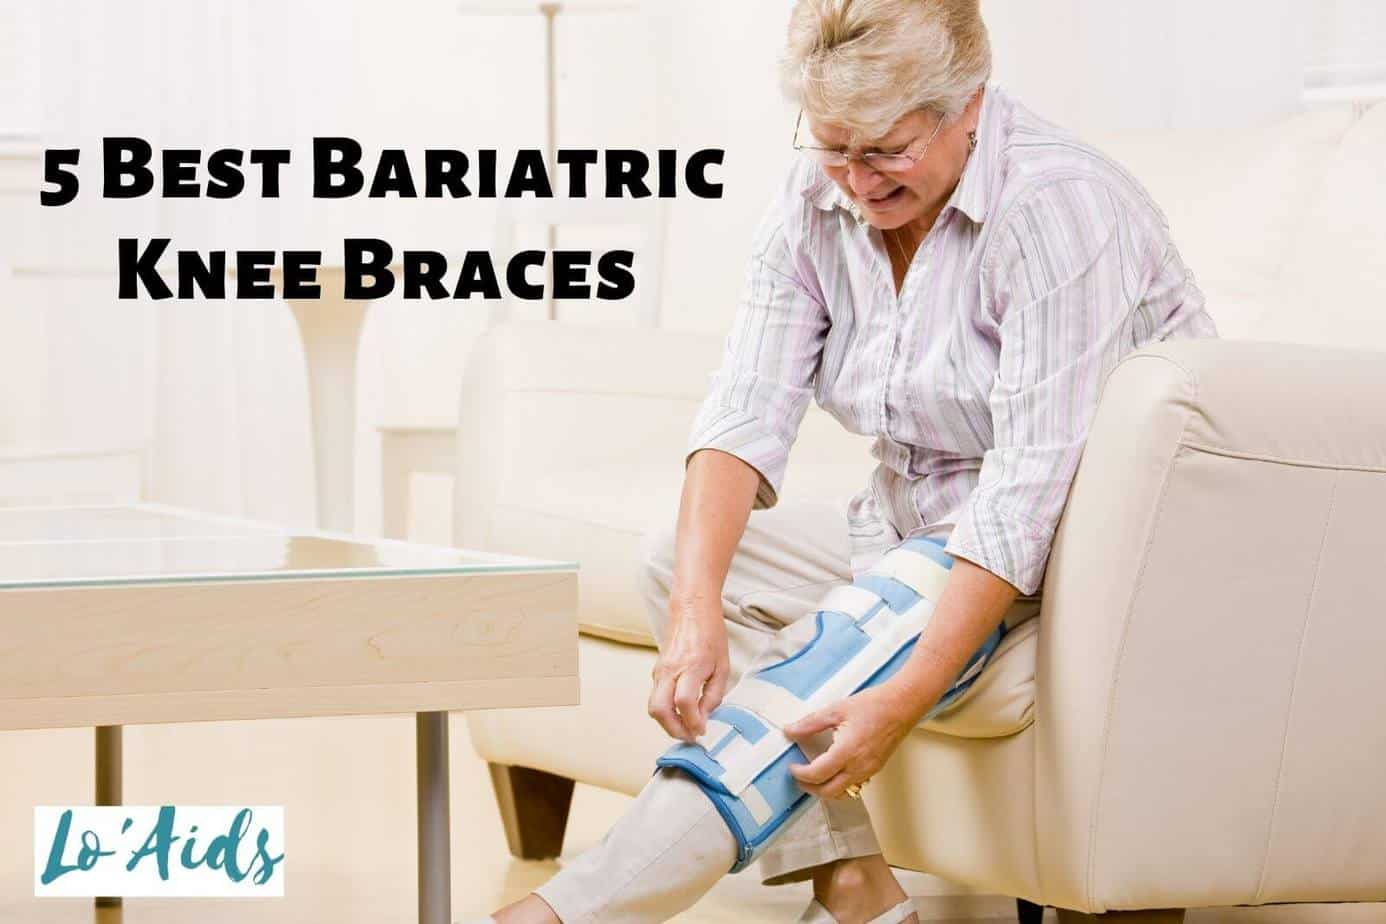 a senior woman wearing sunglasses is putting her new bariatric knee braces